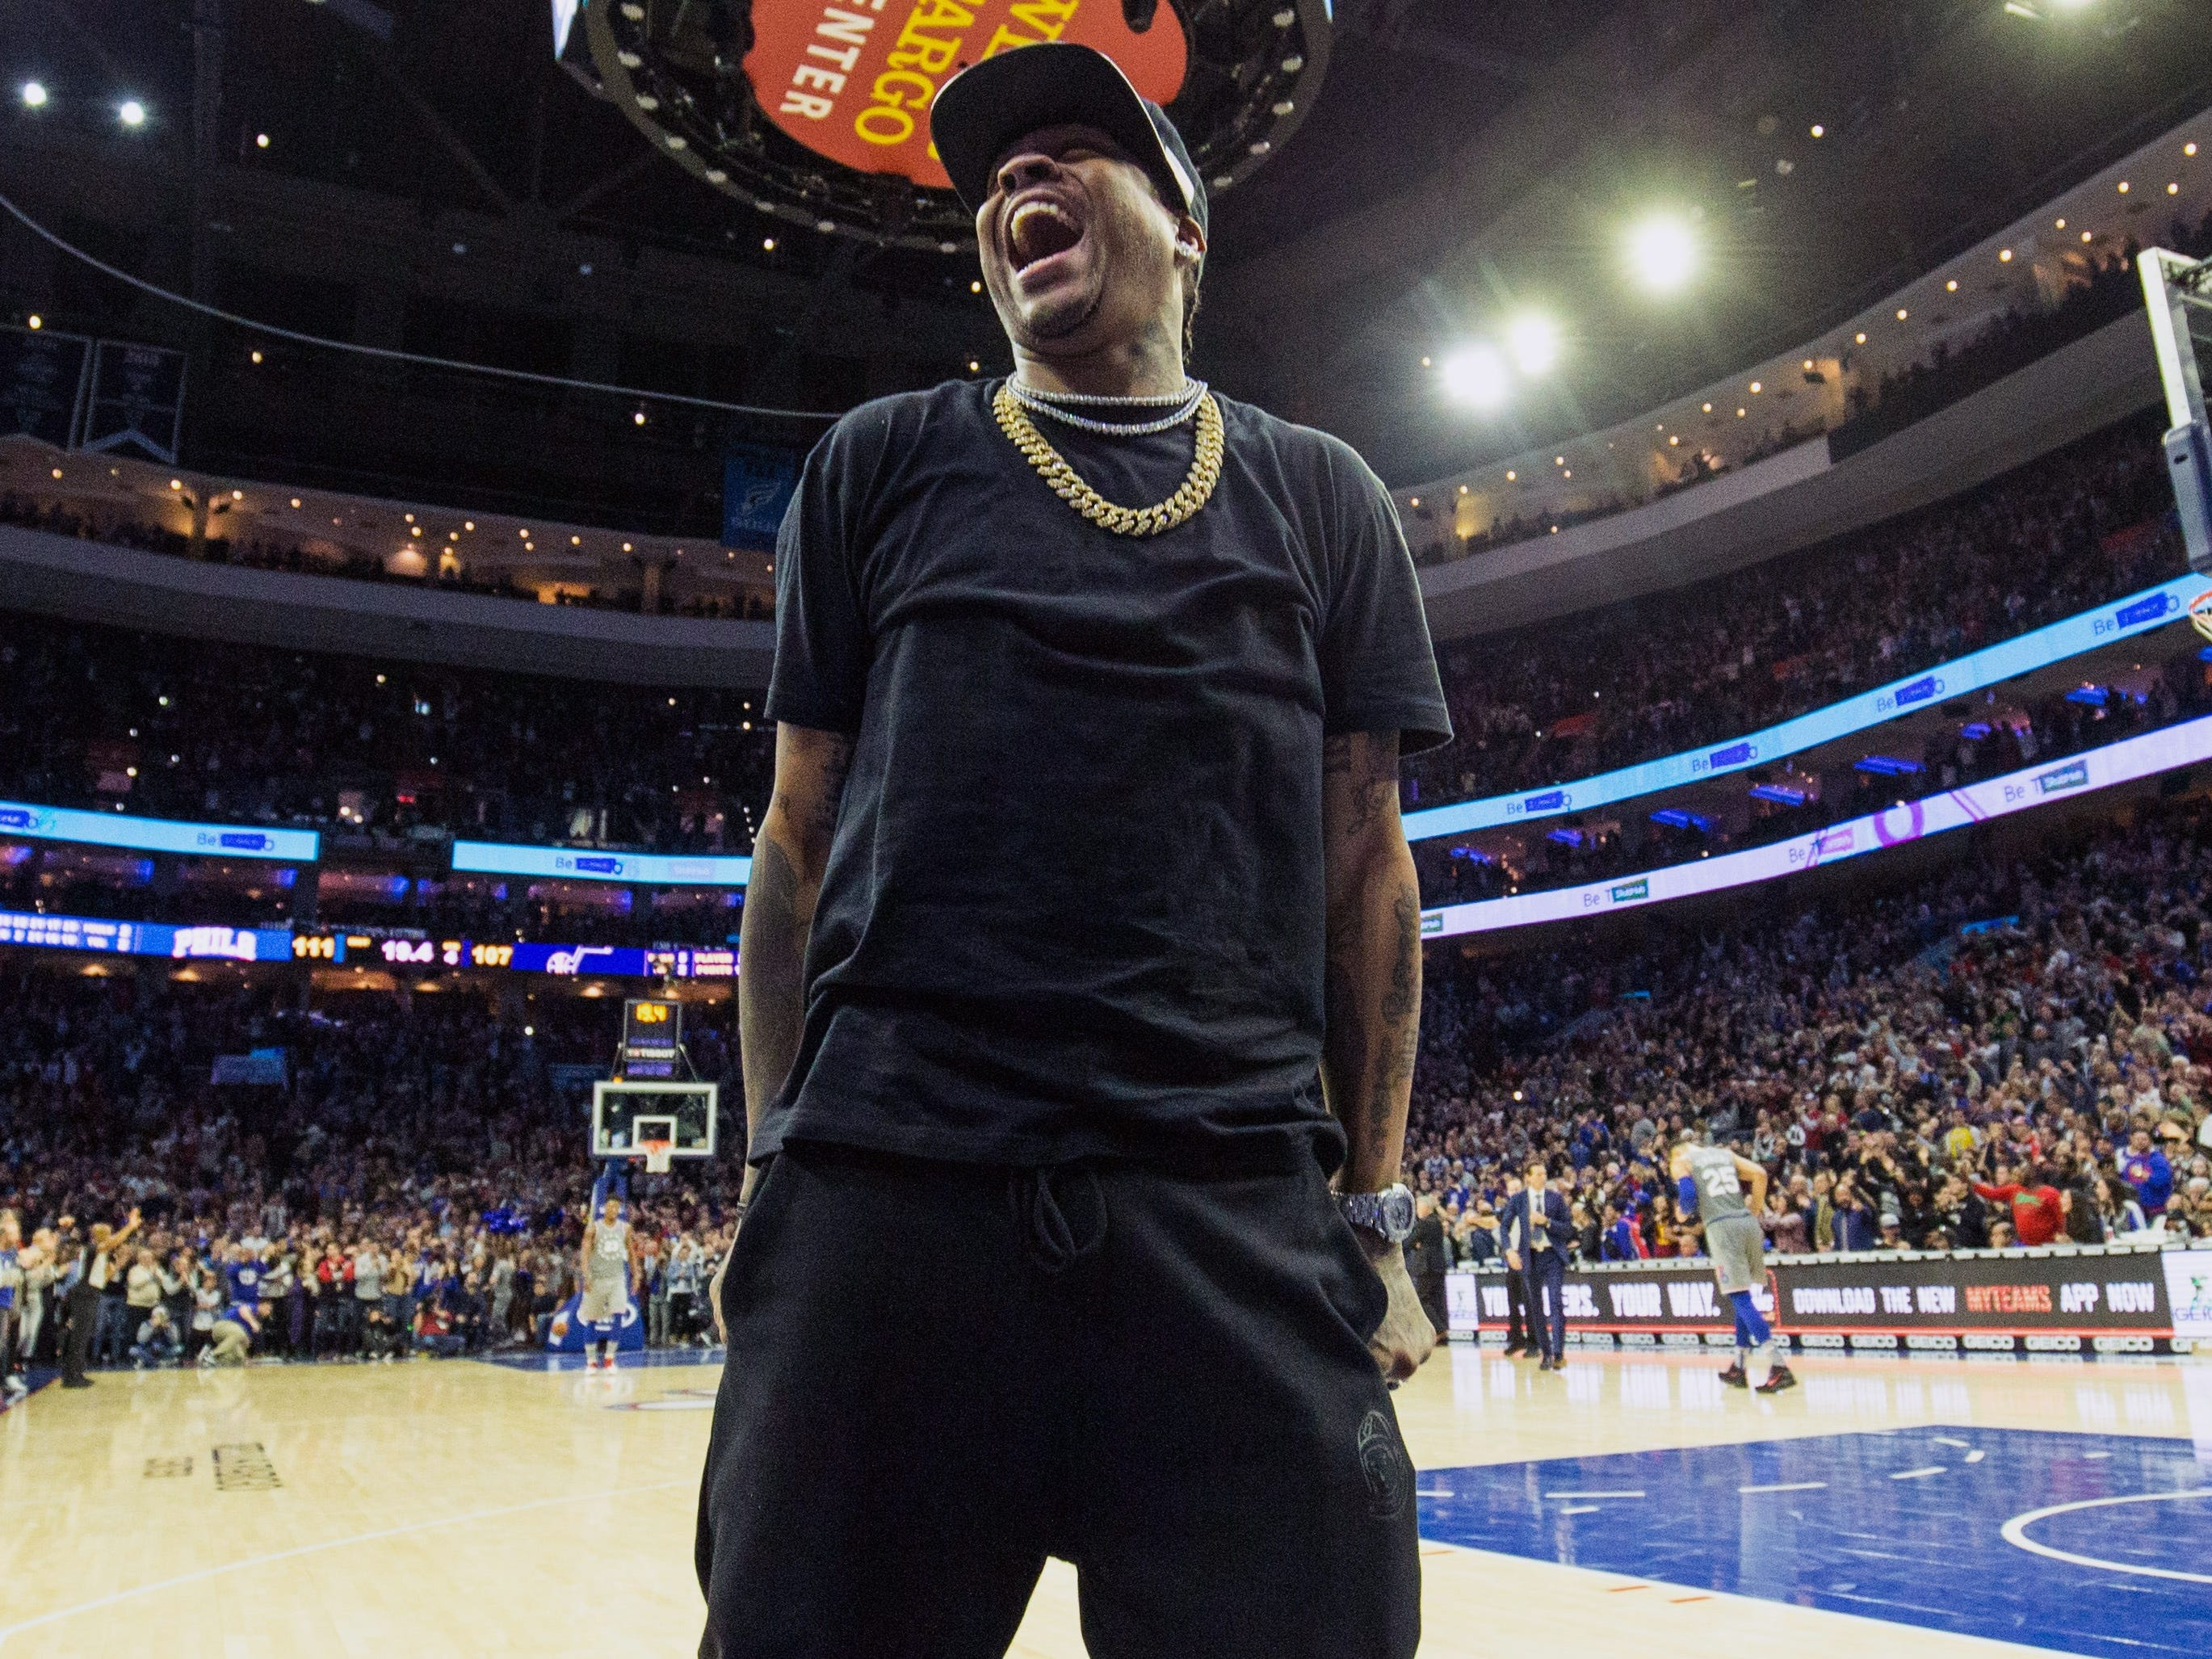 Nov. 16: Hall of Famer and 76ers legend Allen Iverson was fired up for Jimmy Butler's home debut in Philadelphia.